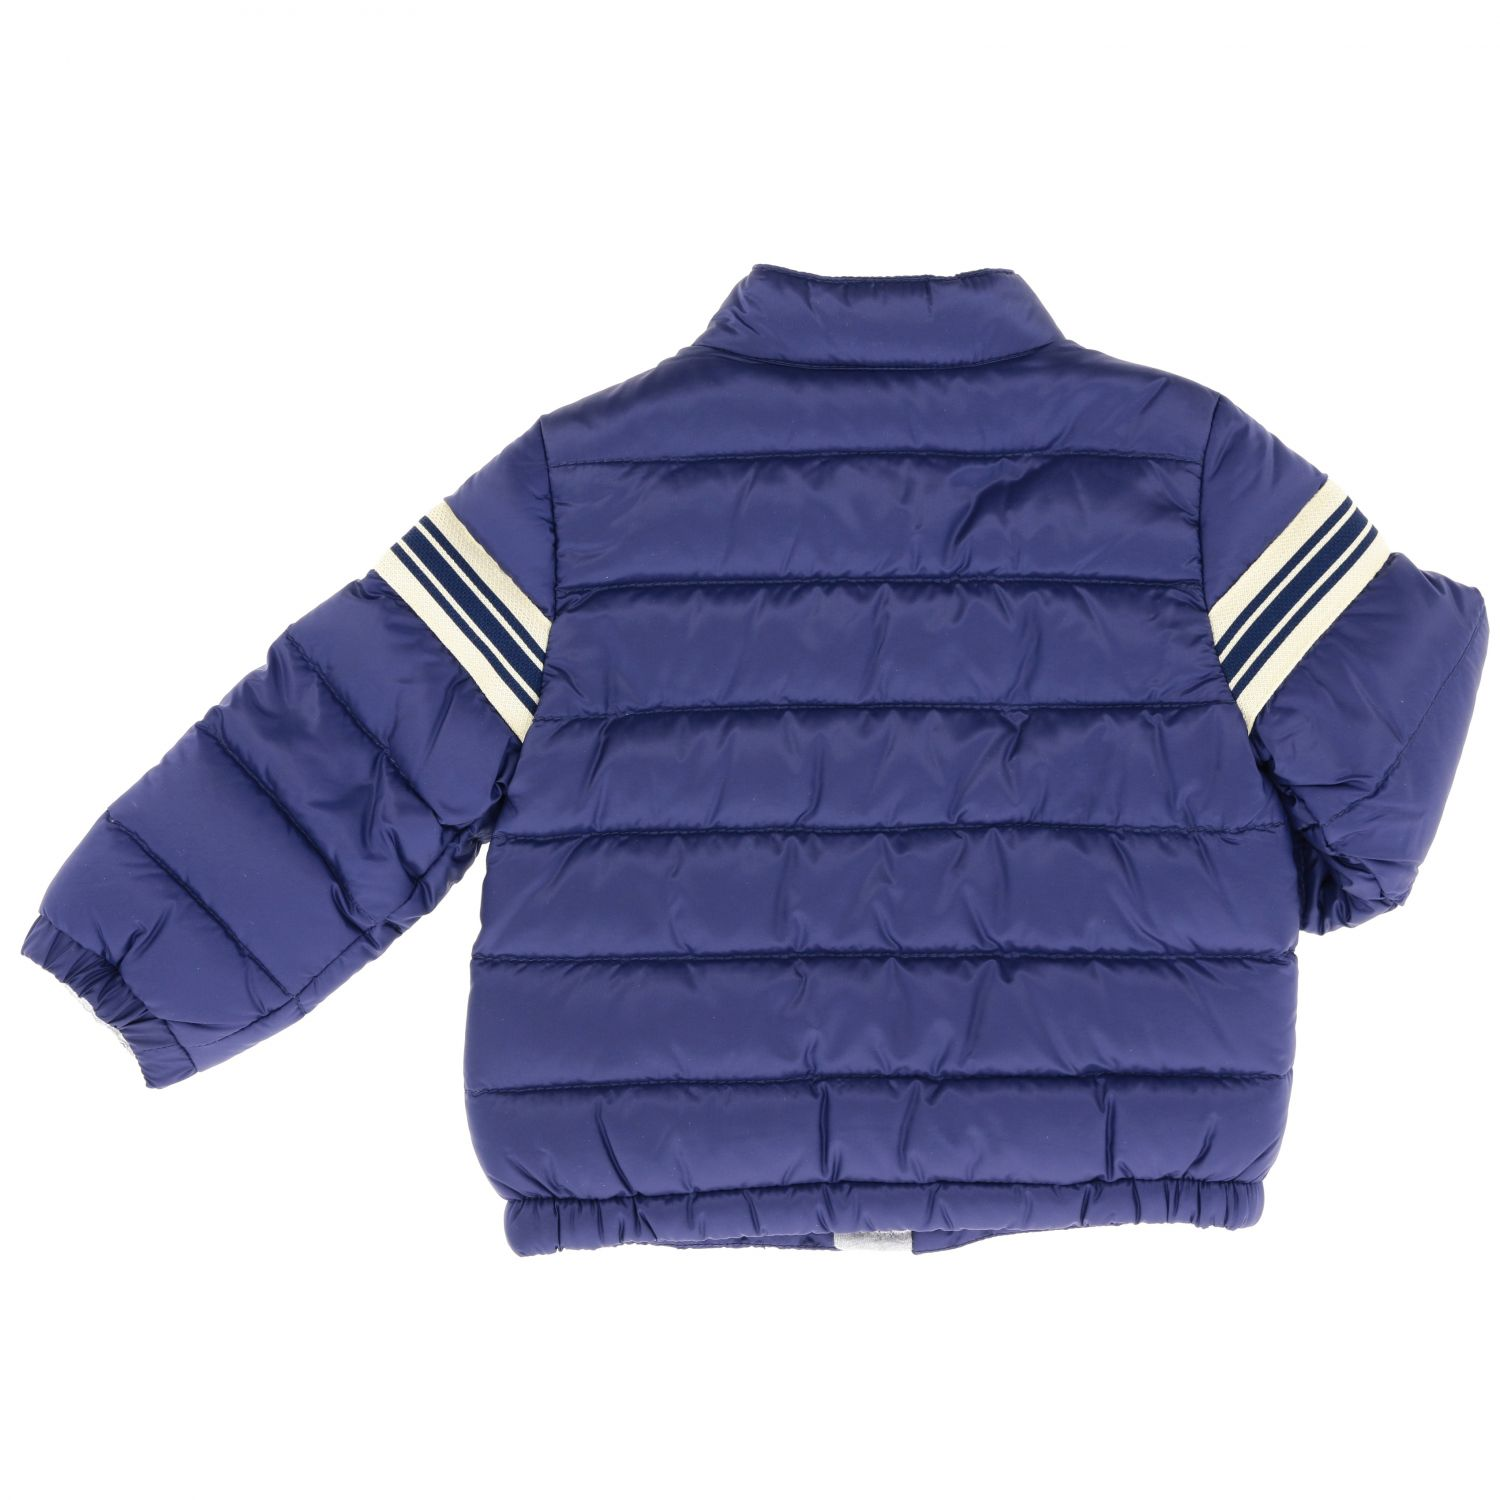 Haraiki Moncler down jacket with striped band and logo navy 2